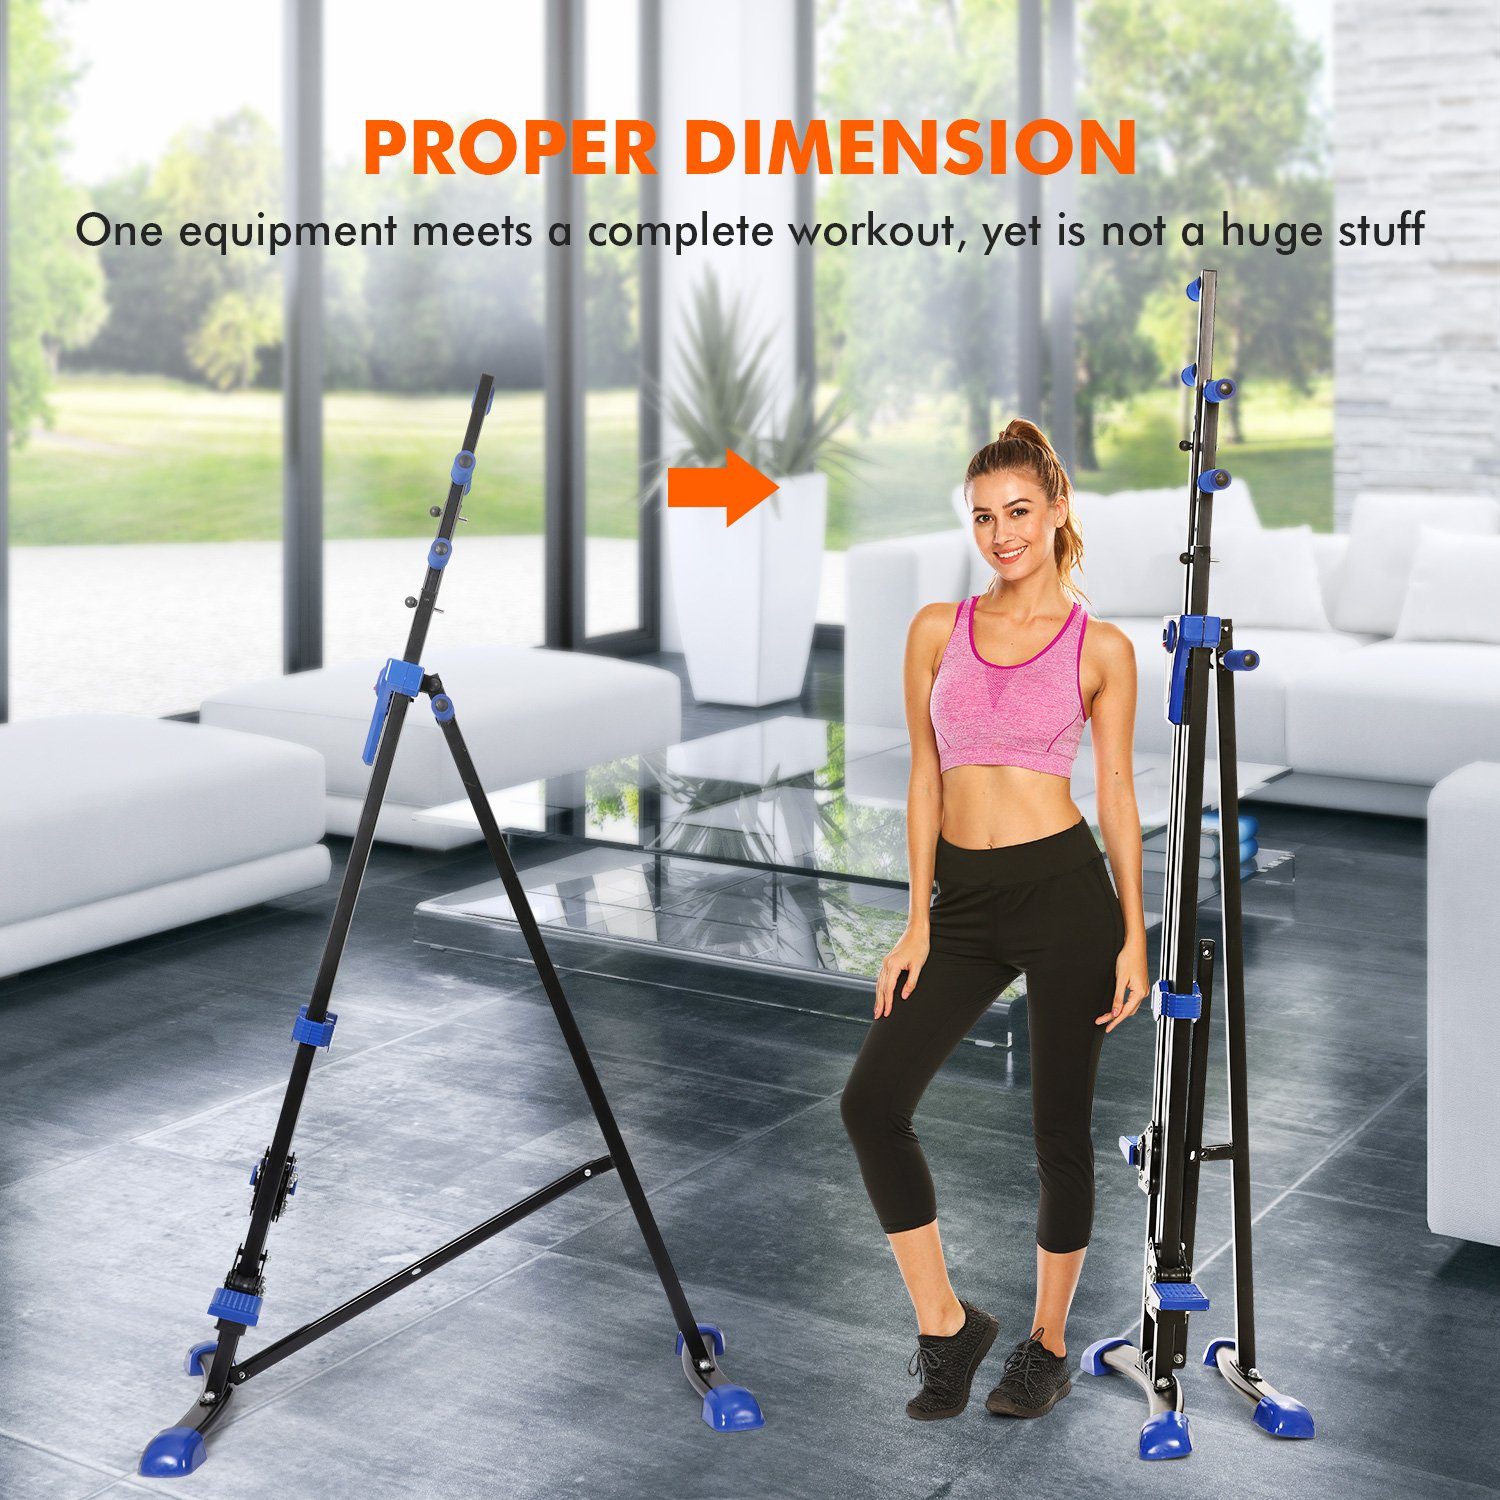 Dozenla Vertical Climber Stepper 2 In 1 Climbing Machine Exercise Fitness Foldable Stair Cardio Equipment [US Stock] by Dozenla (Image #4)